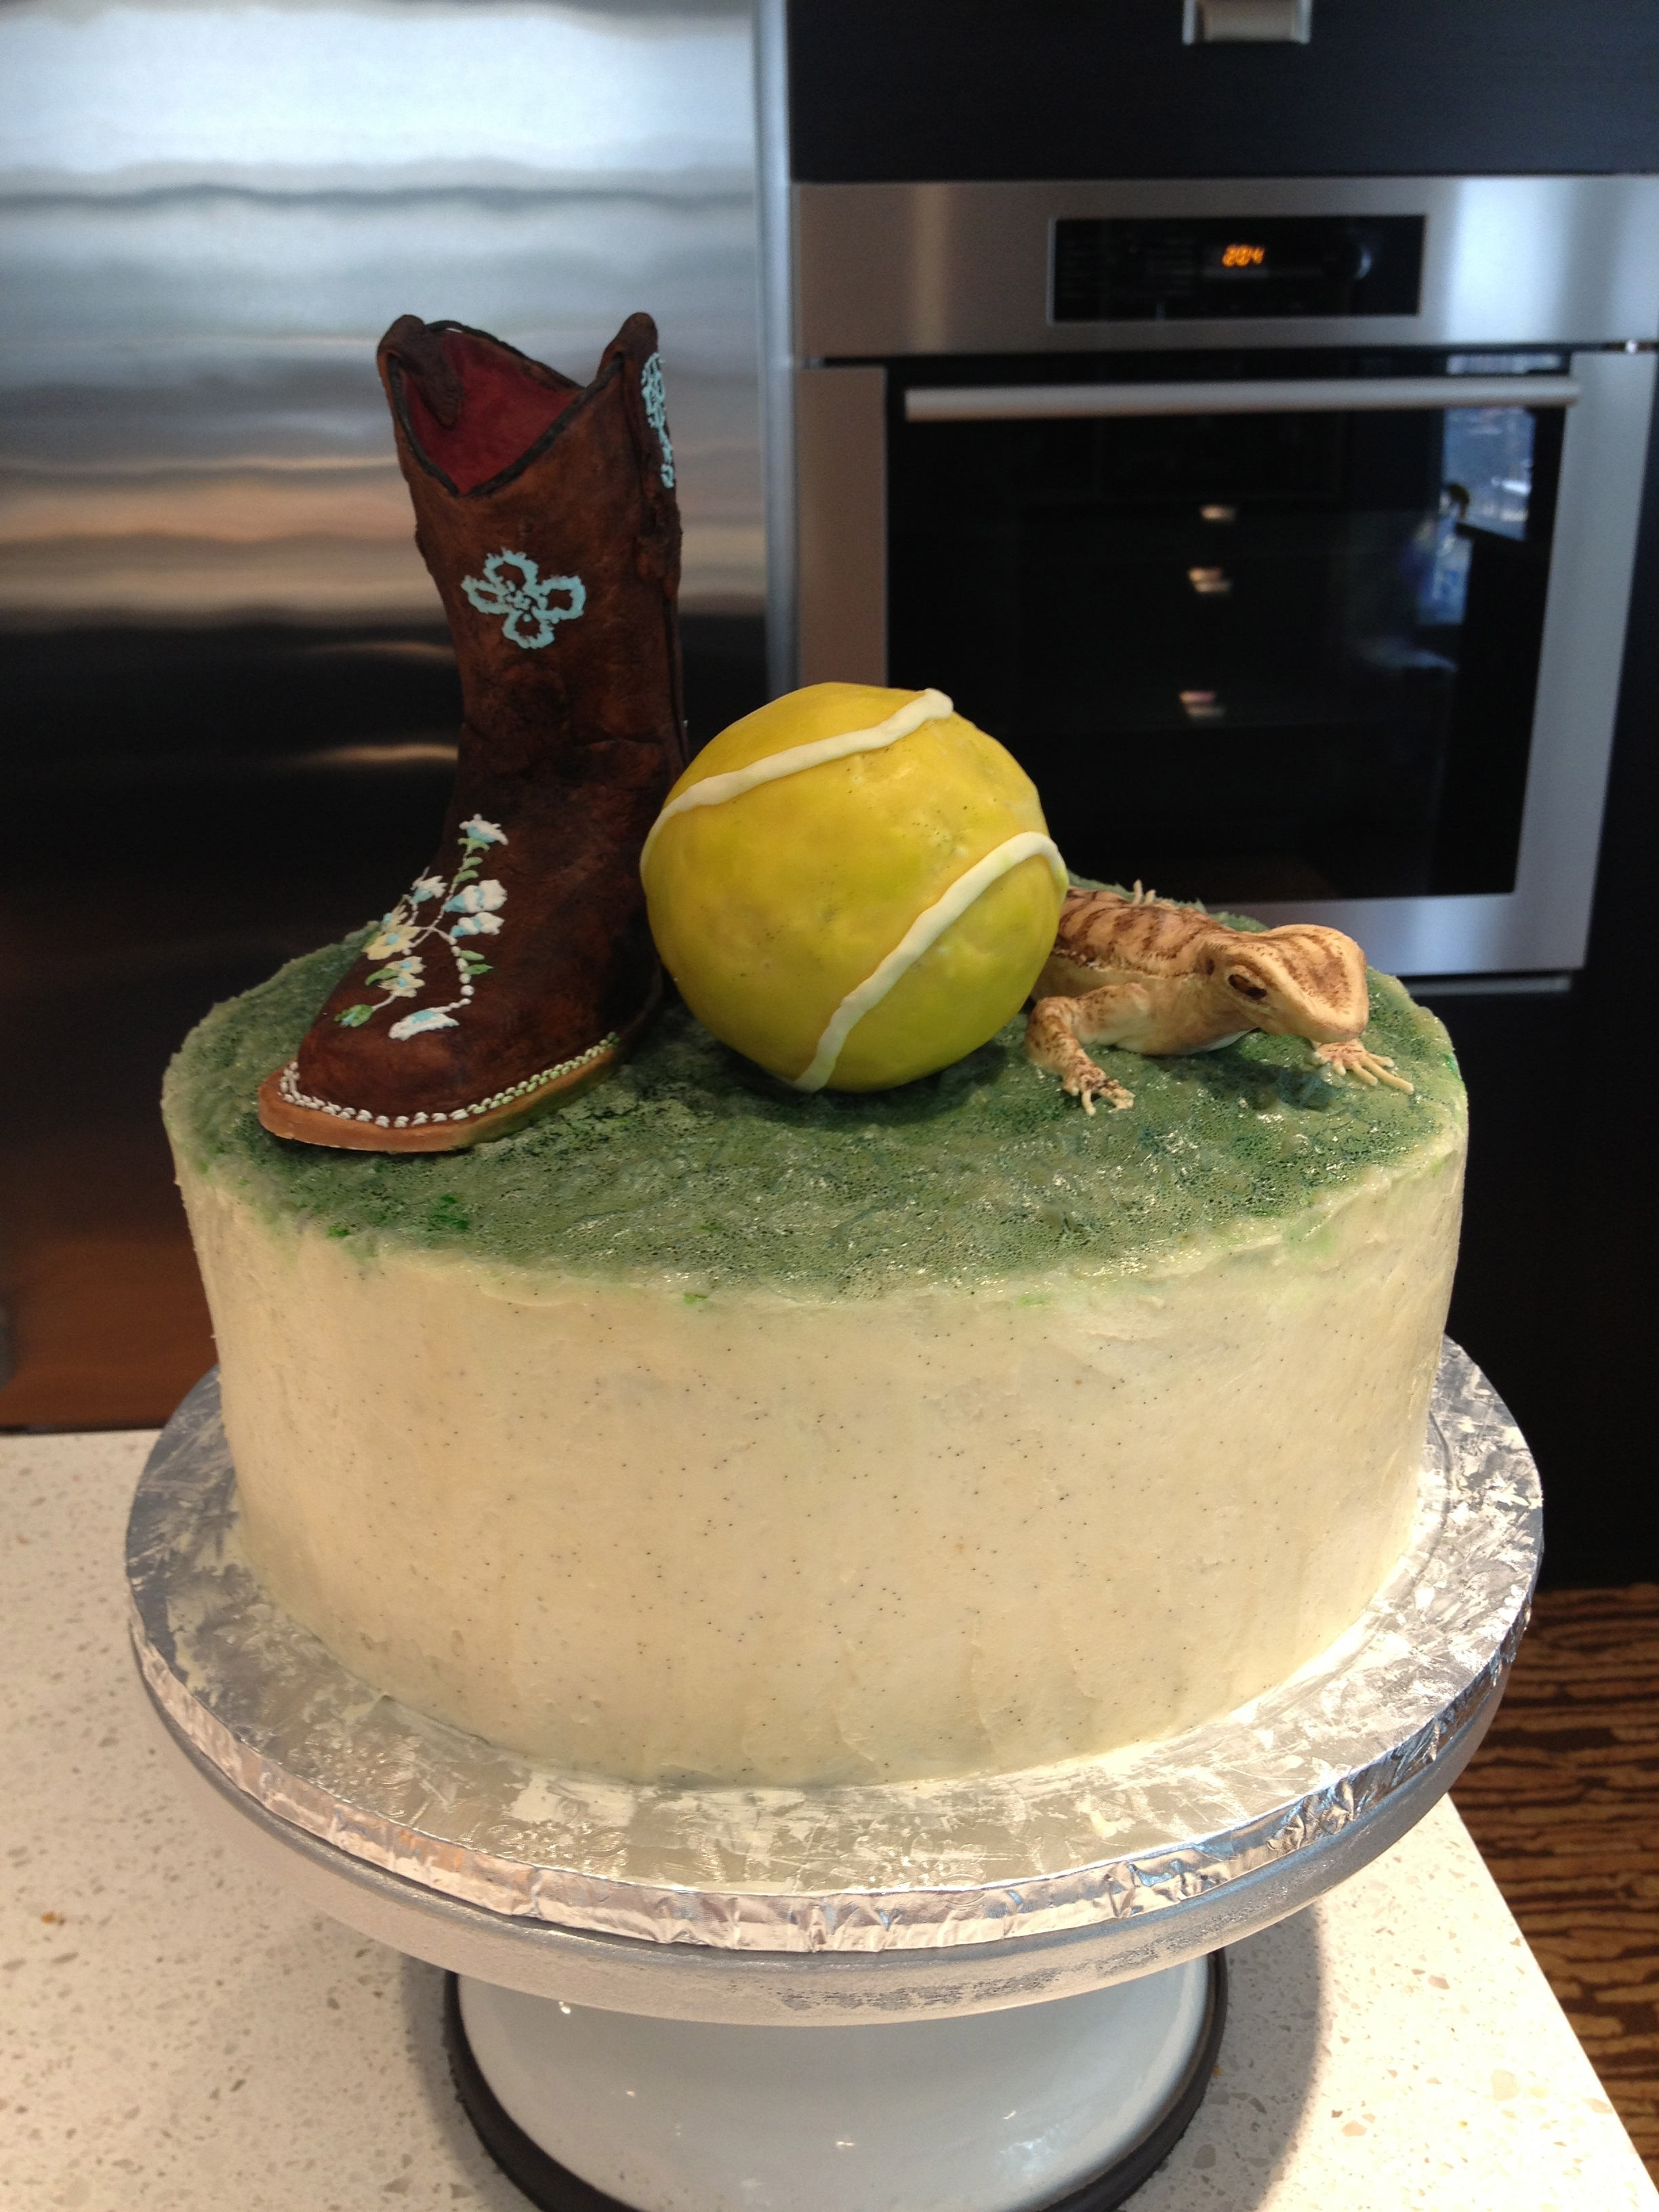 This Was A Cake To Celebrate The Birthdays Of 3 Different People The Boot Was For A Daughter That Rides Horses I Had Her Mom Send Me A Pho... This was a cake to celebrate the birthdays of 3 different people. The boot was for a daughter that rides horses. I had her mom send me a...